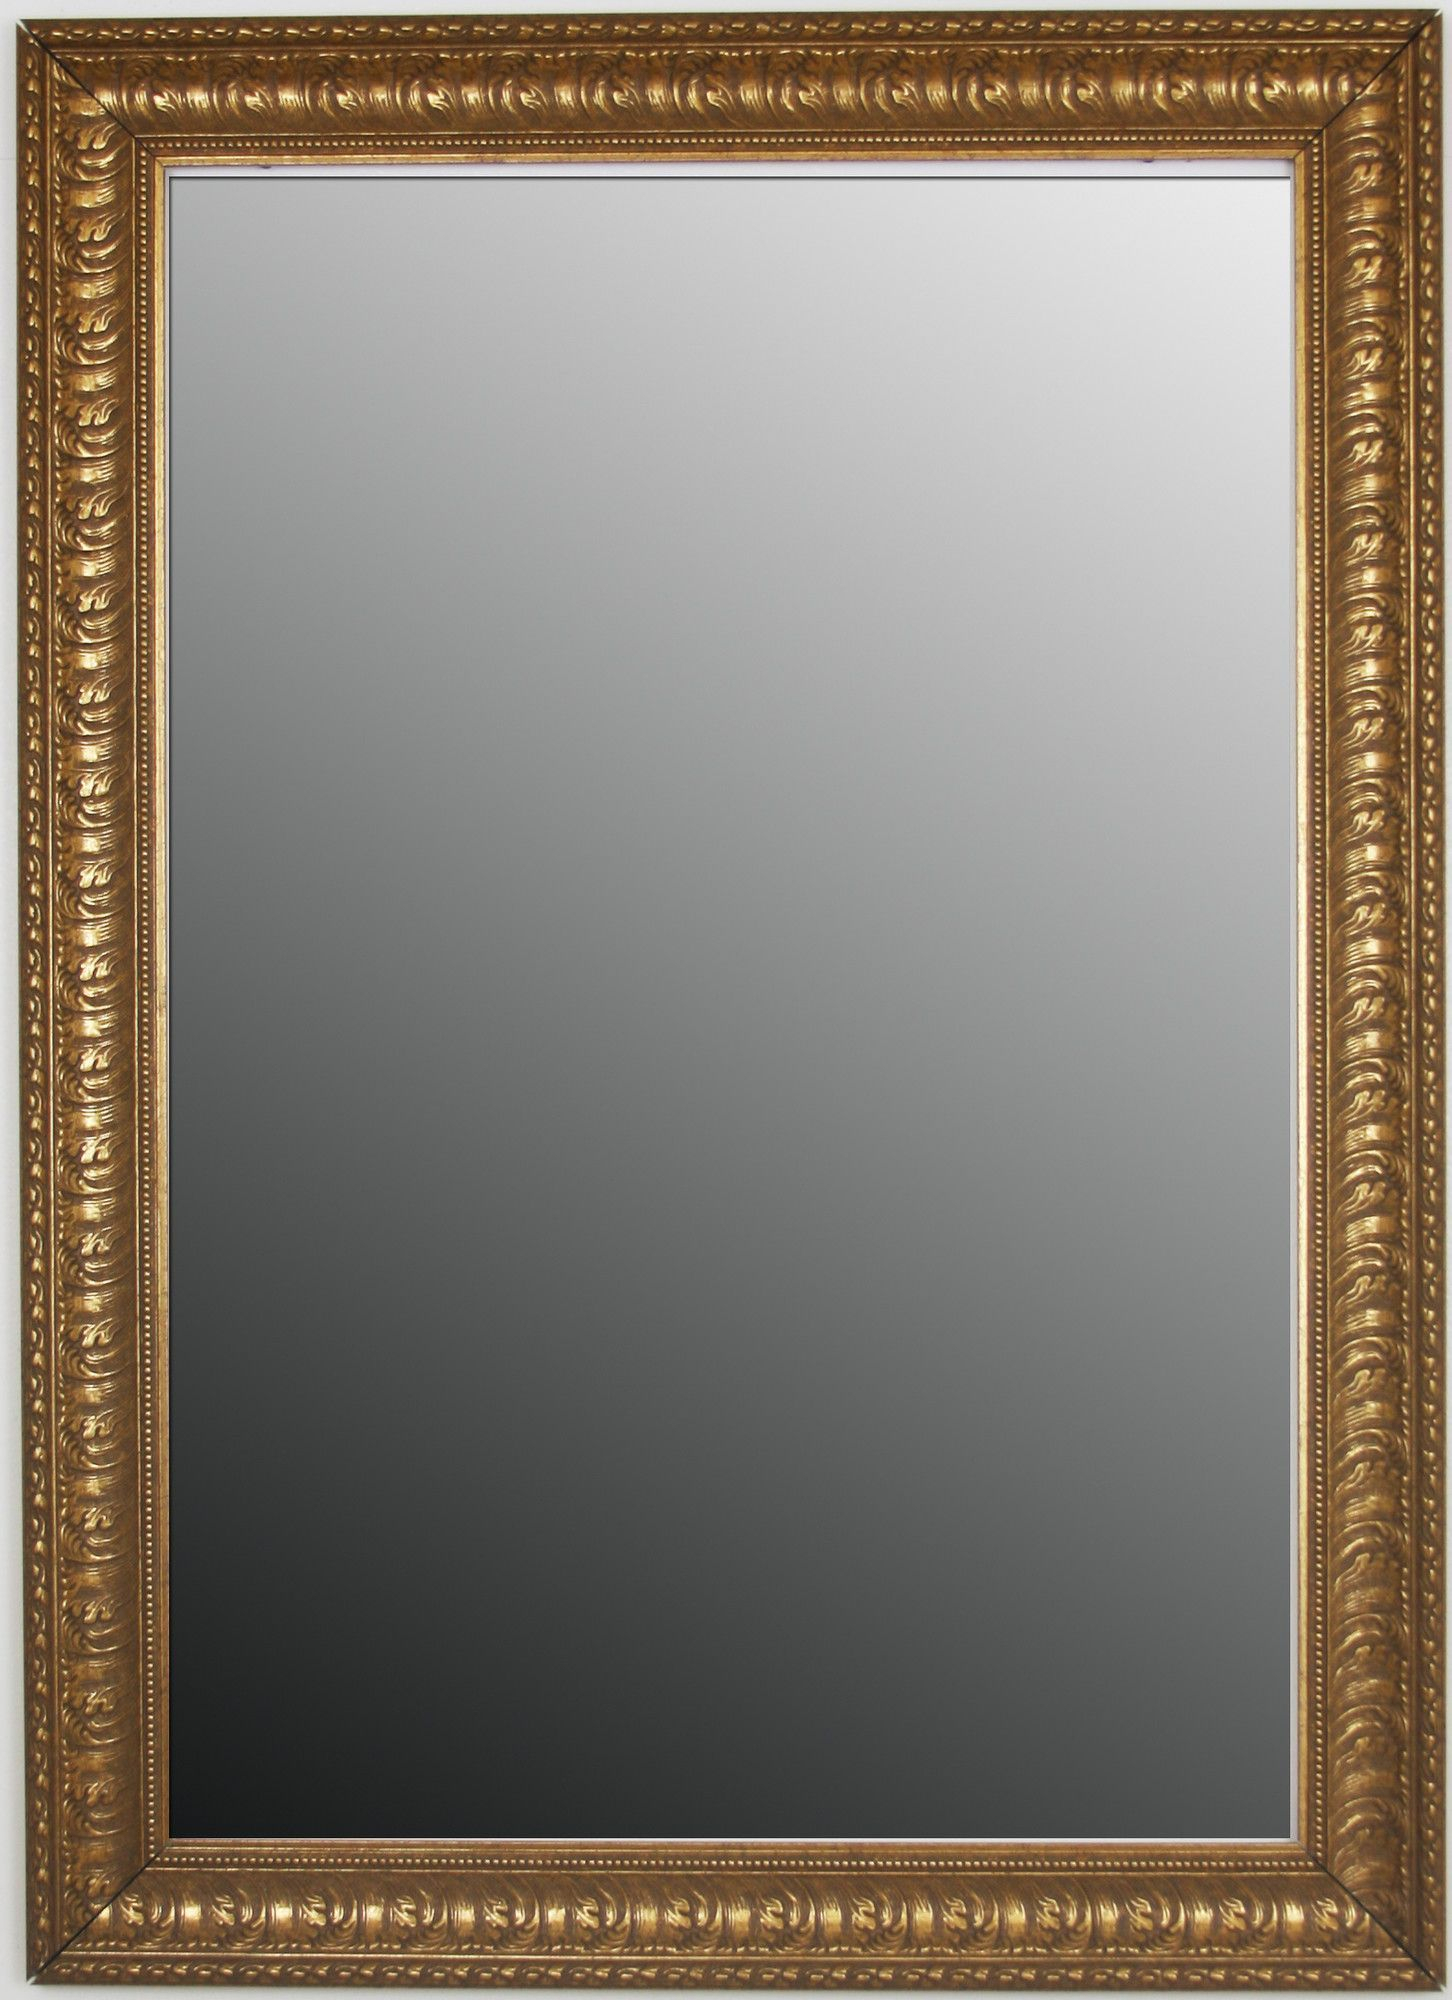 Ocean Waves Beaded Accents Framed Wall Mirror | Products Inside Beaded Accent Wall Mirrors (View 17 of 30)